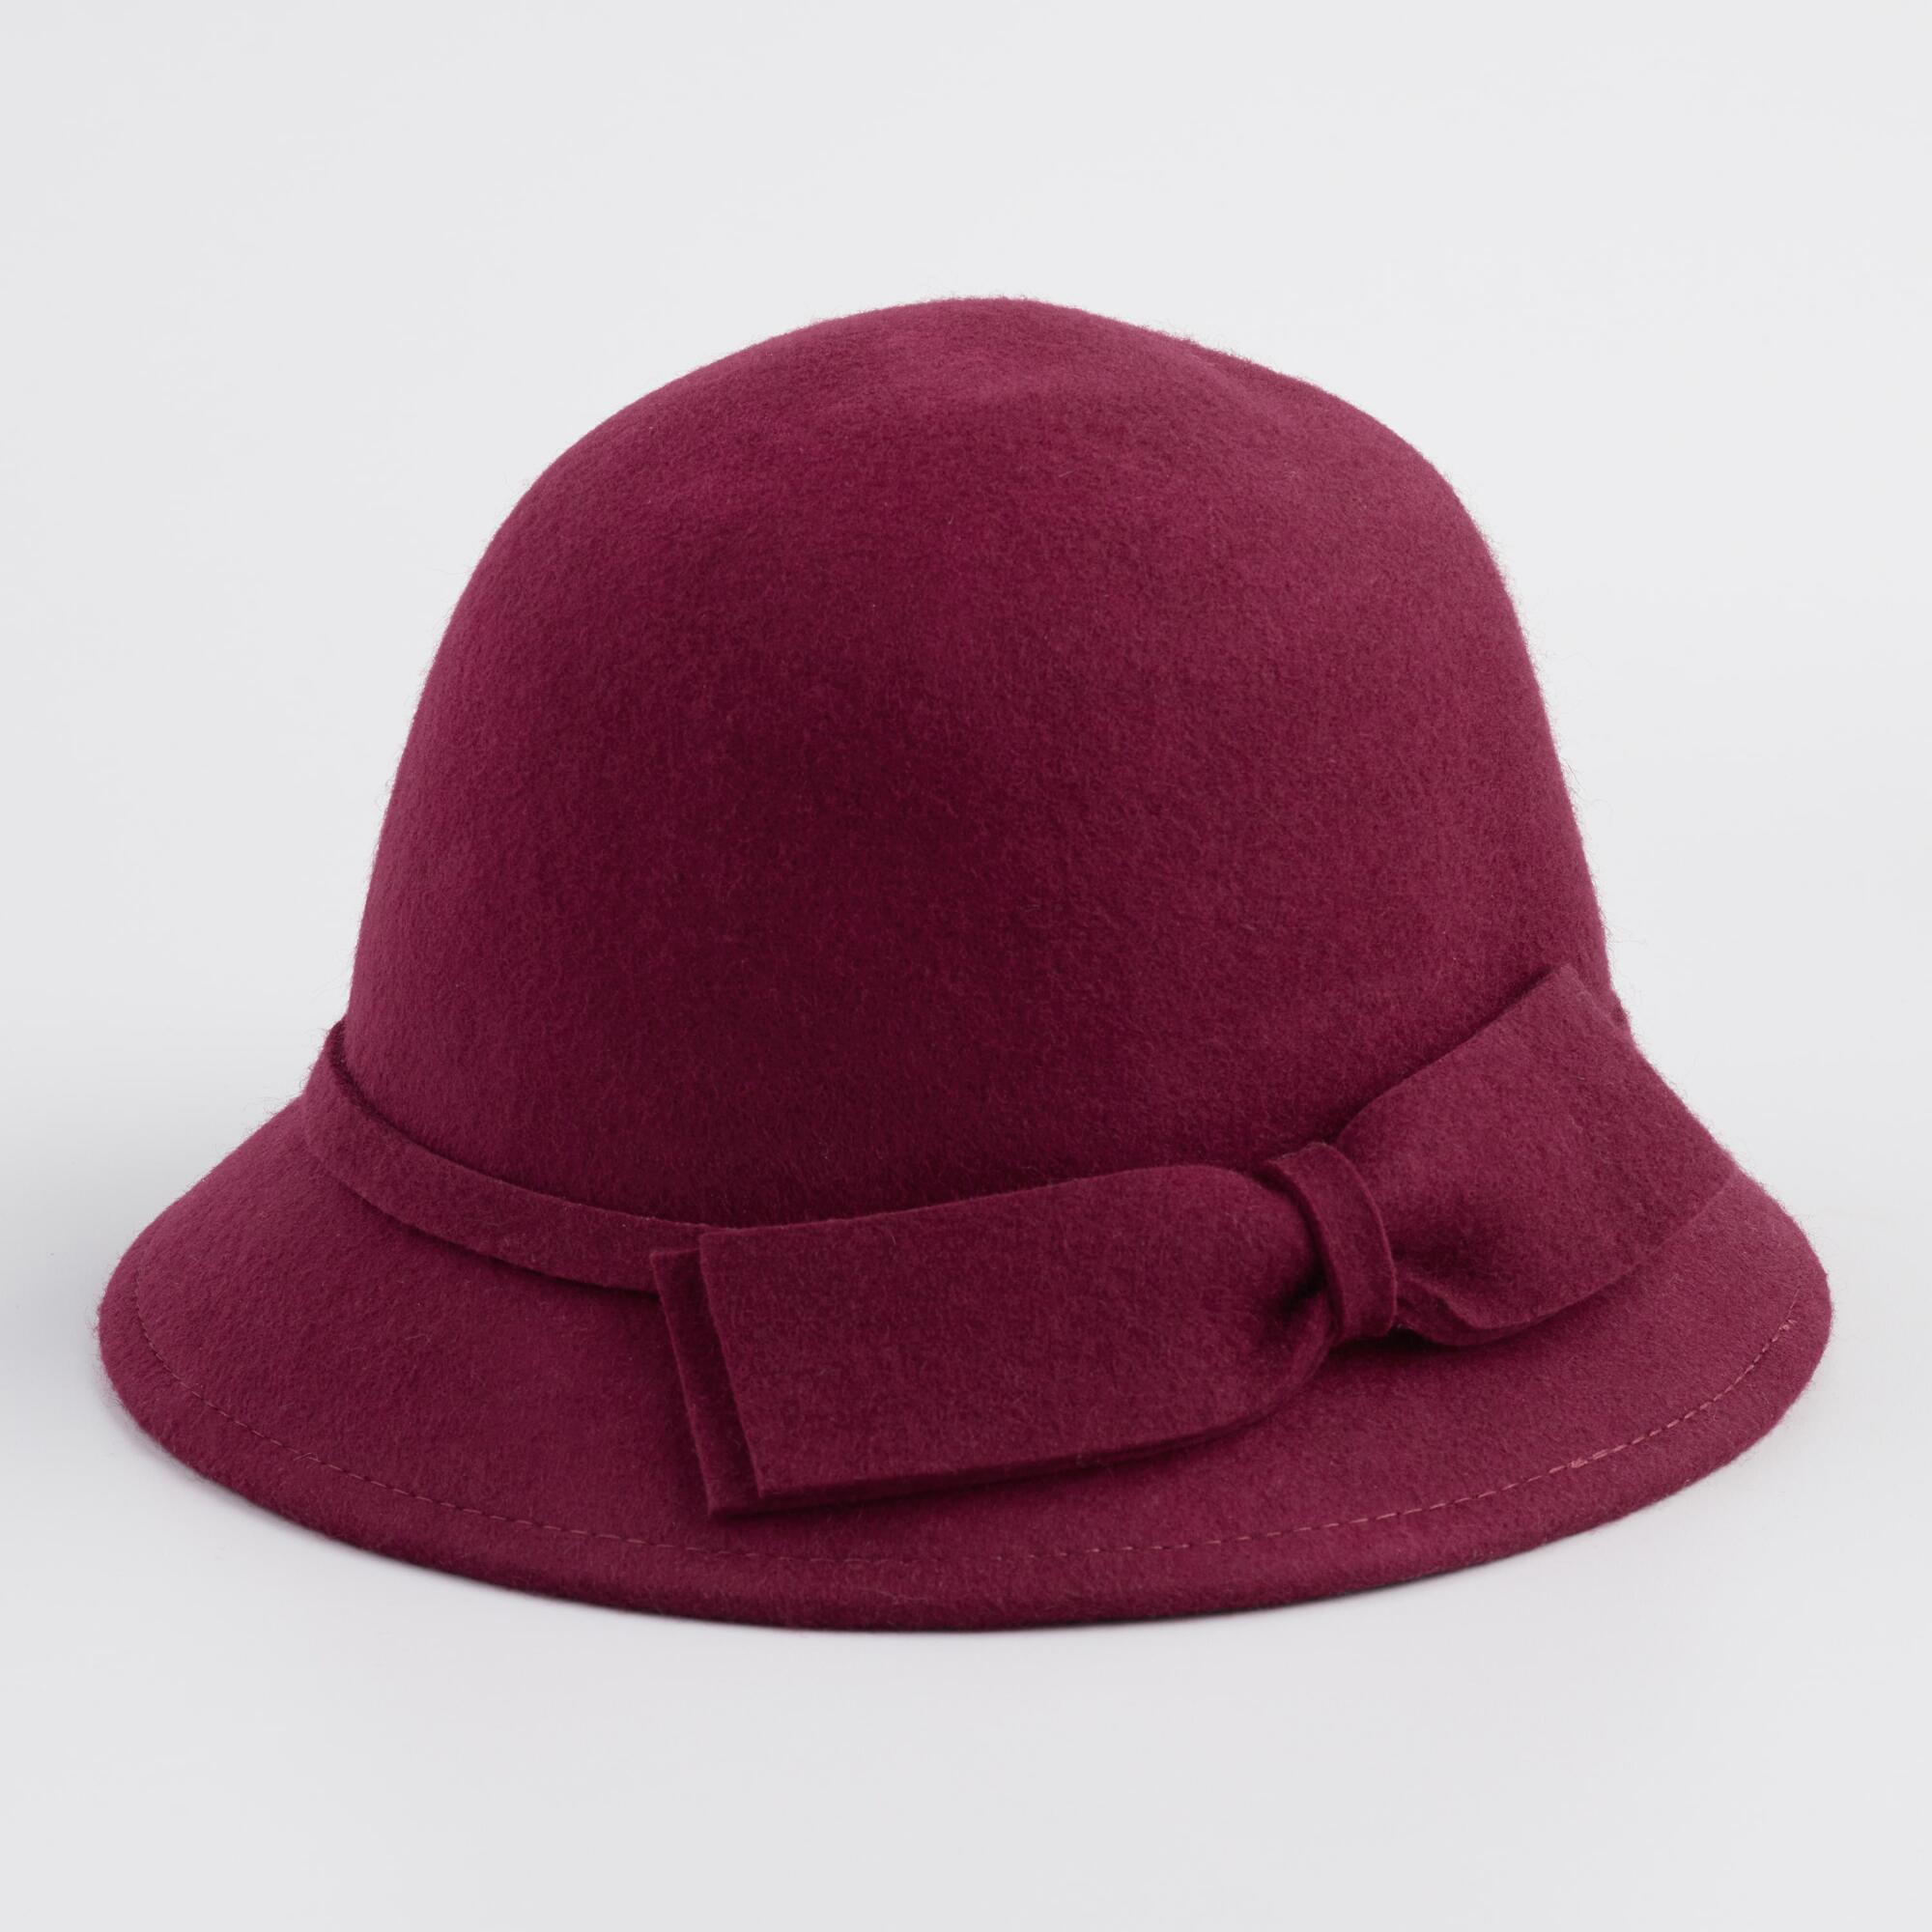 478c4a67f4f87 1920s Hat Styles for Women- History Beyond the Cloche Hat Wine Red Wool  Cloche Hat